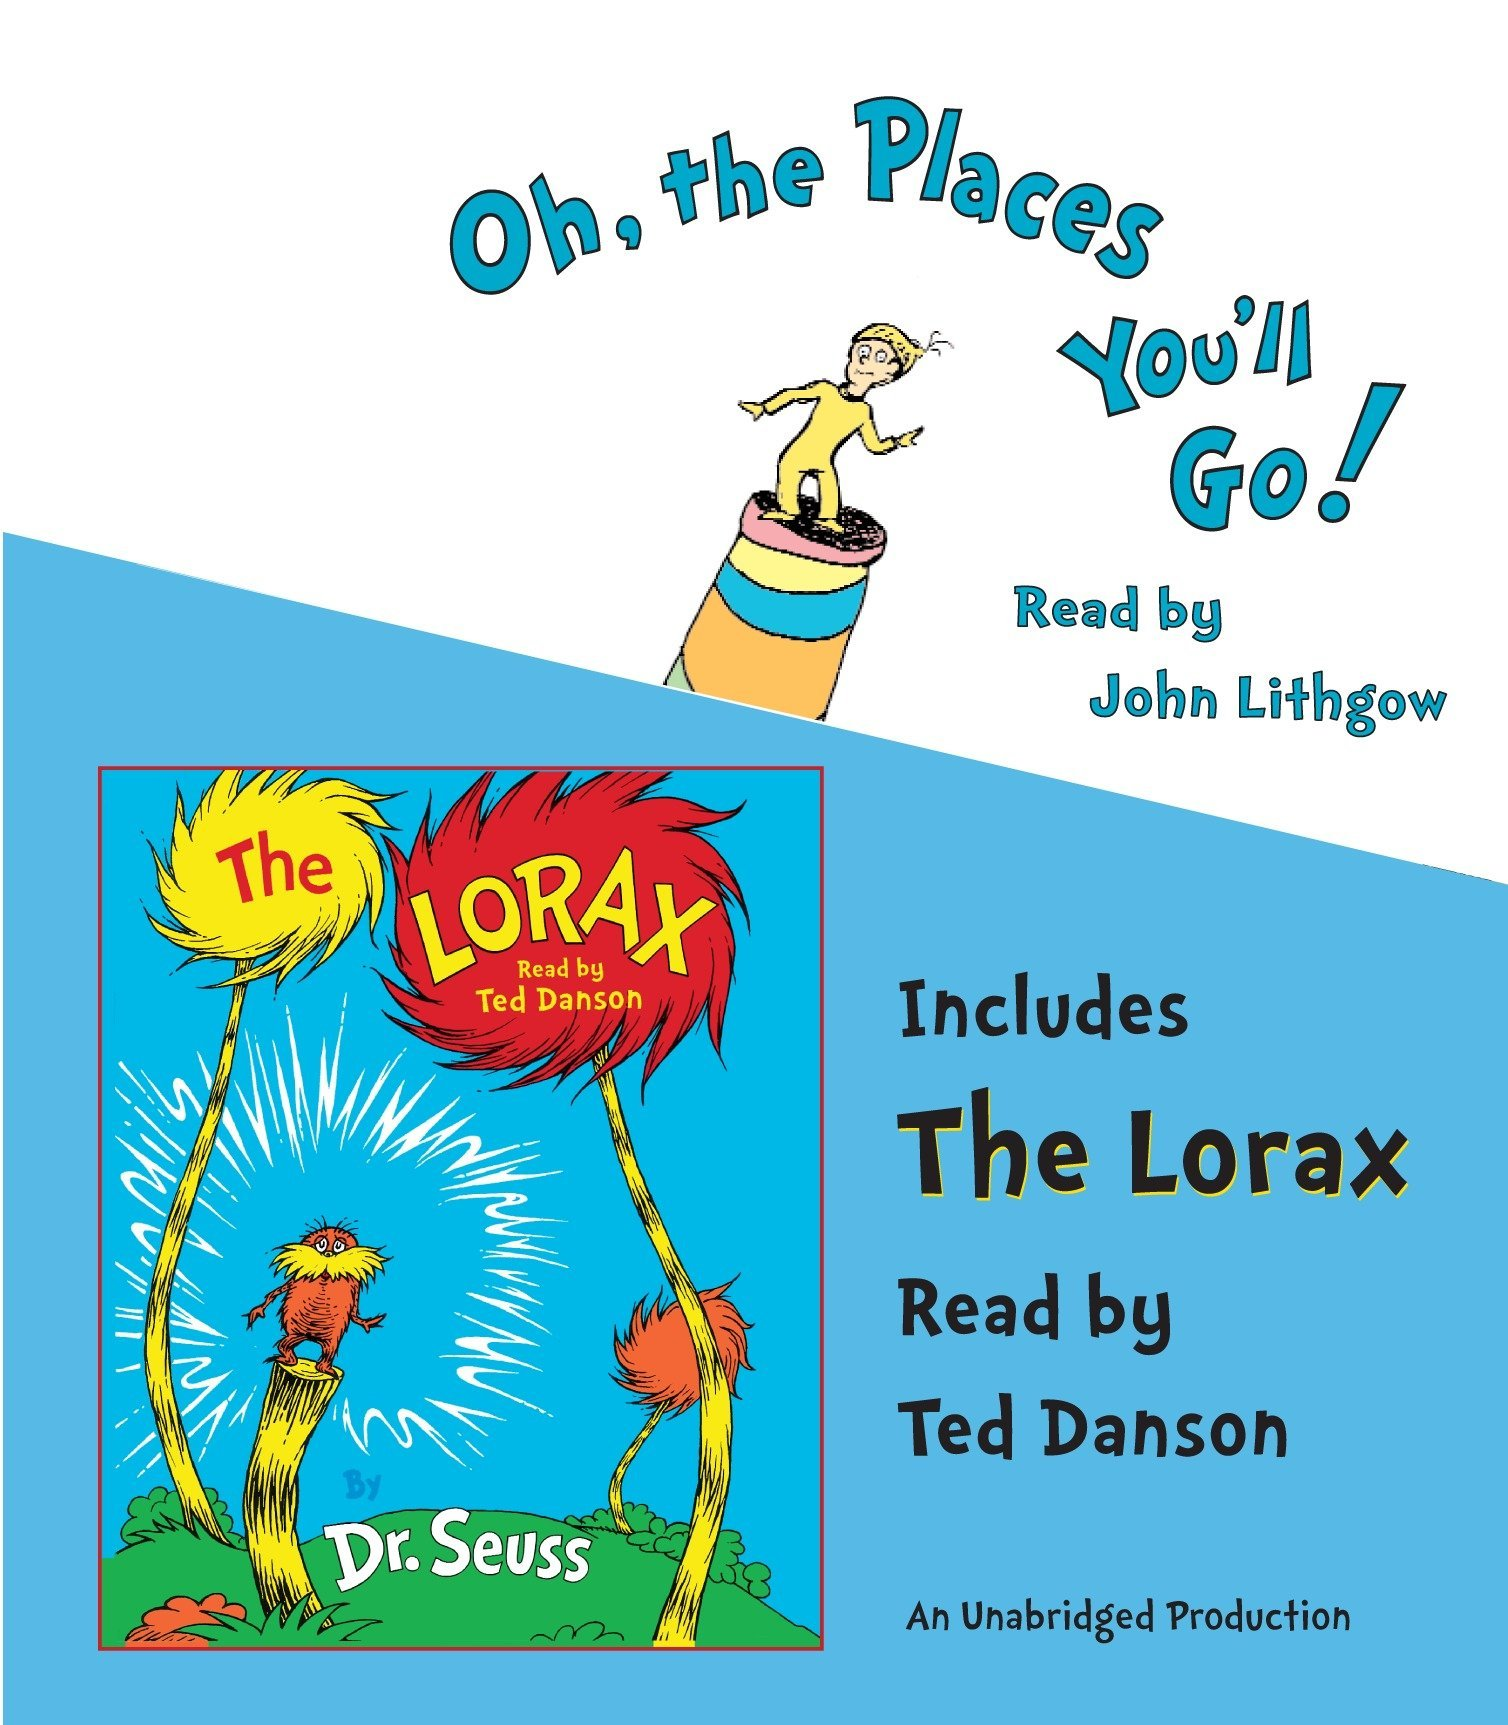 Amazon.com: Oh, the Places You'll Go! and The Lorax (Classic Seuss)  (9780739363911): Dr. Seuss, John Lithgow, Ted Danson: Books